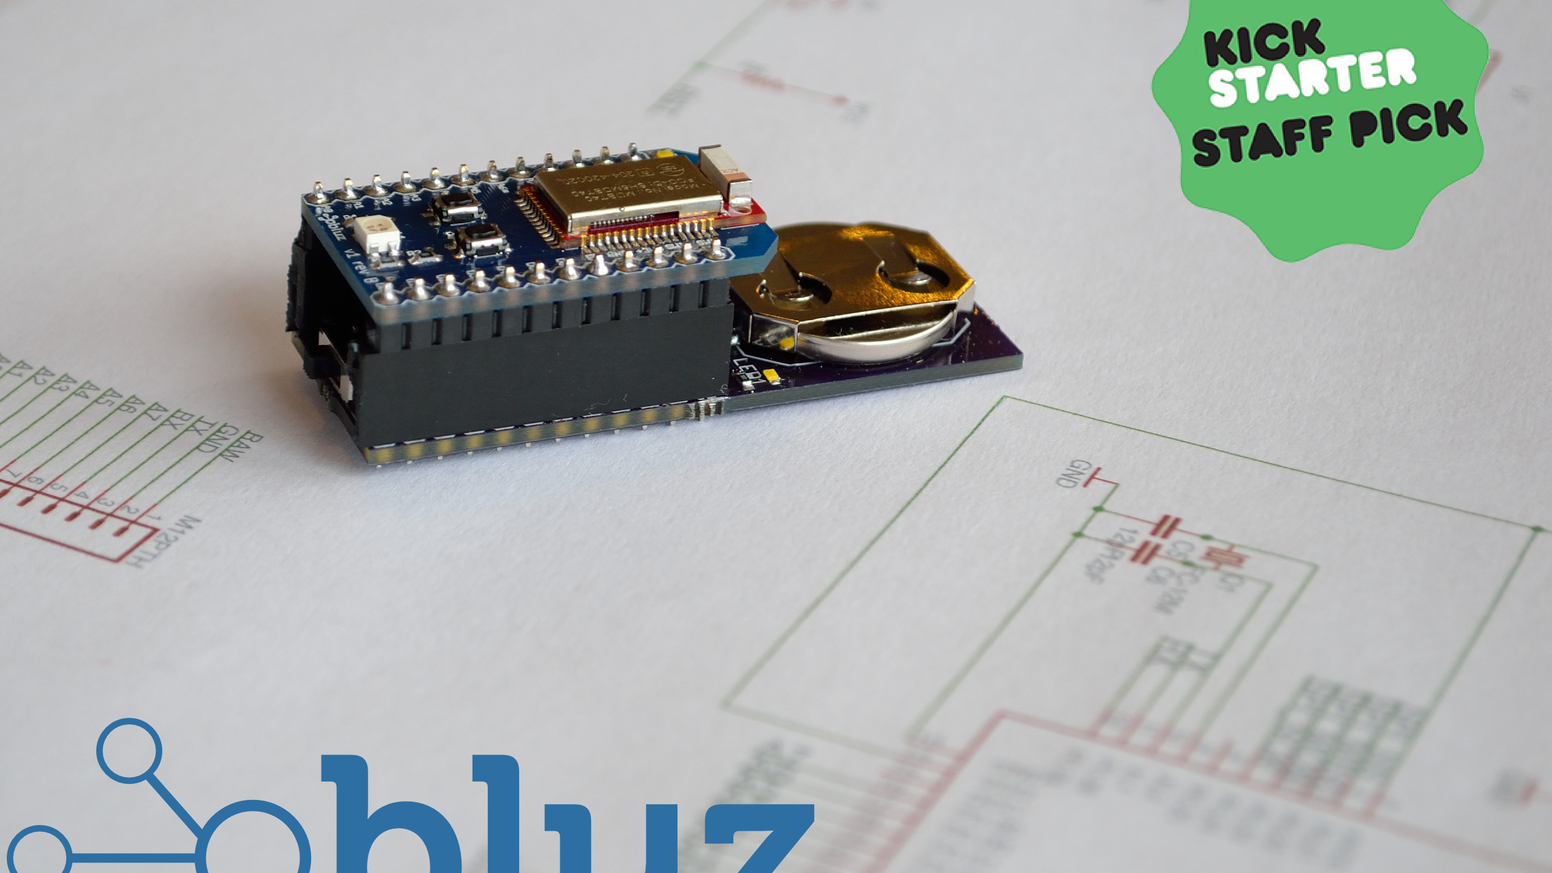 Build Bluetooth LE devices for the Internet of Things with a REST API and Web IDE that run on coin cell batteries.